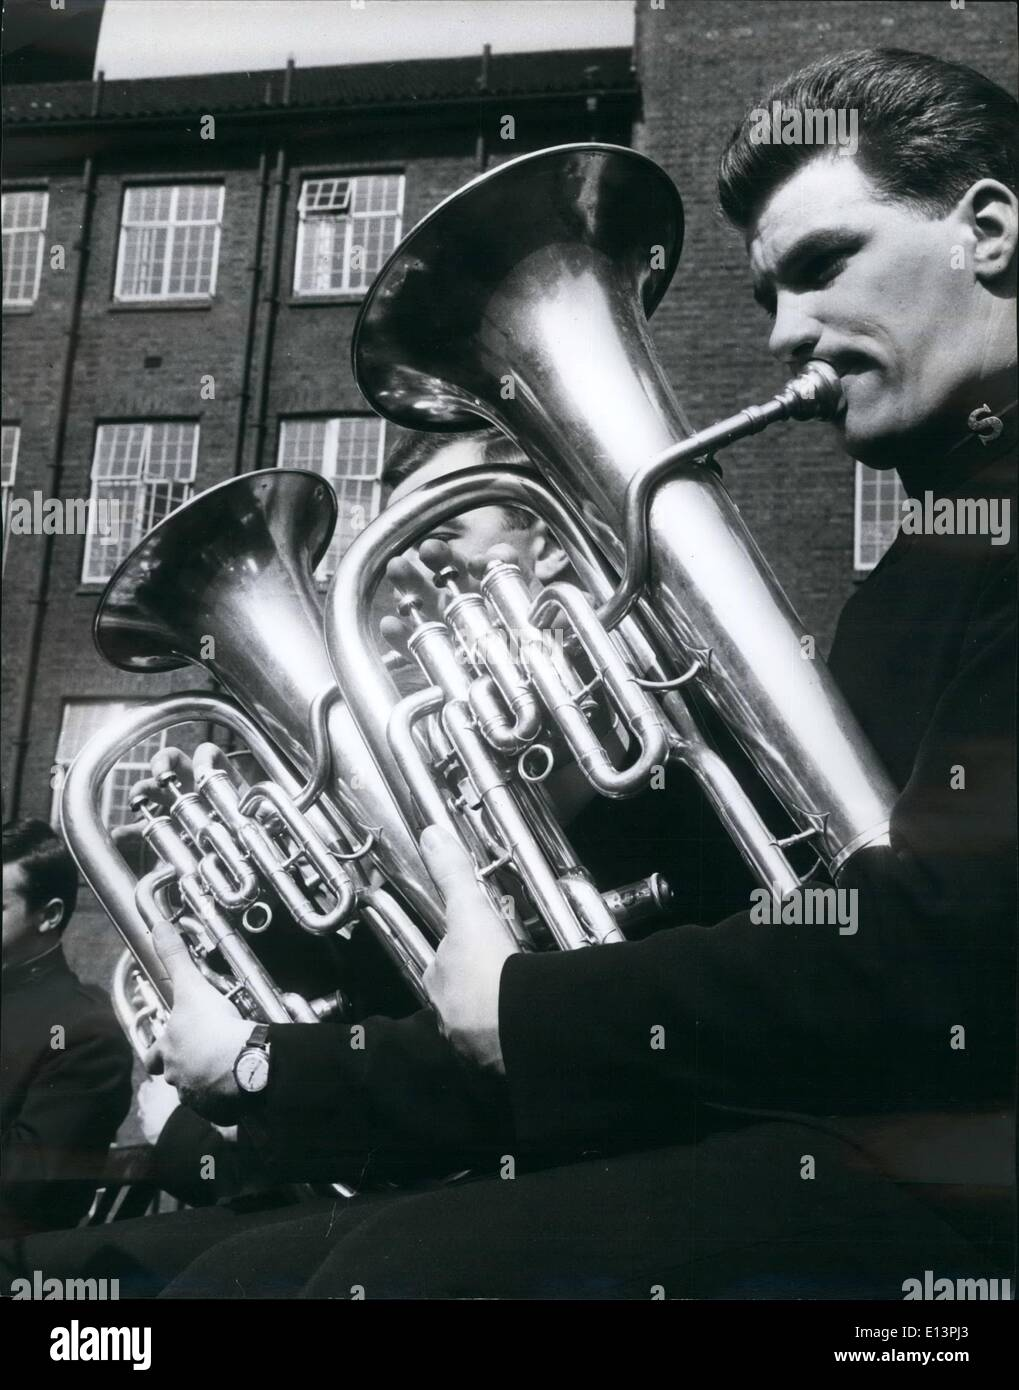 Mar. 22, 2012 - Euphorium players practicing Salvation Army's Training College in London. - Stock Image